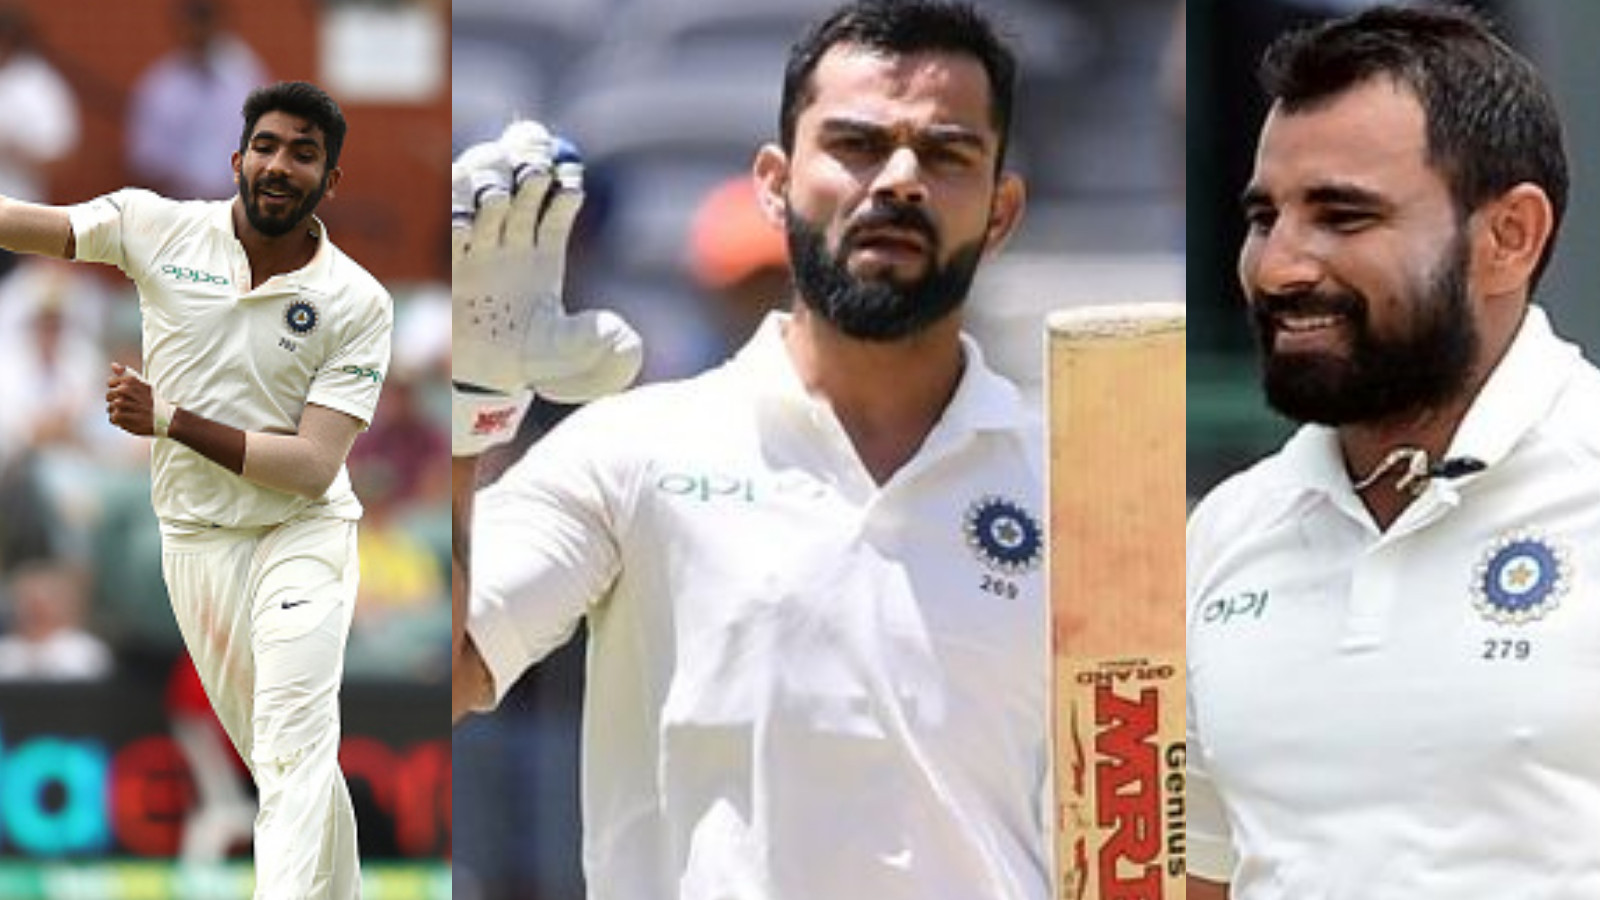 Virat Kohli cements himself as no.1 Test batsman; Bumrah and Shami gain big in latest Test rankings